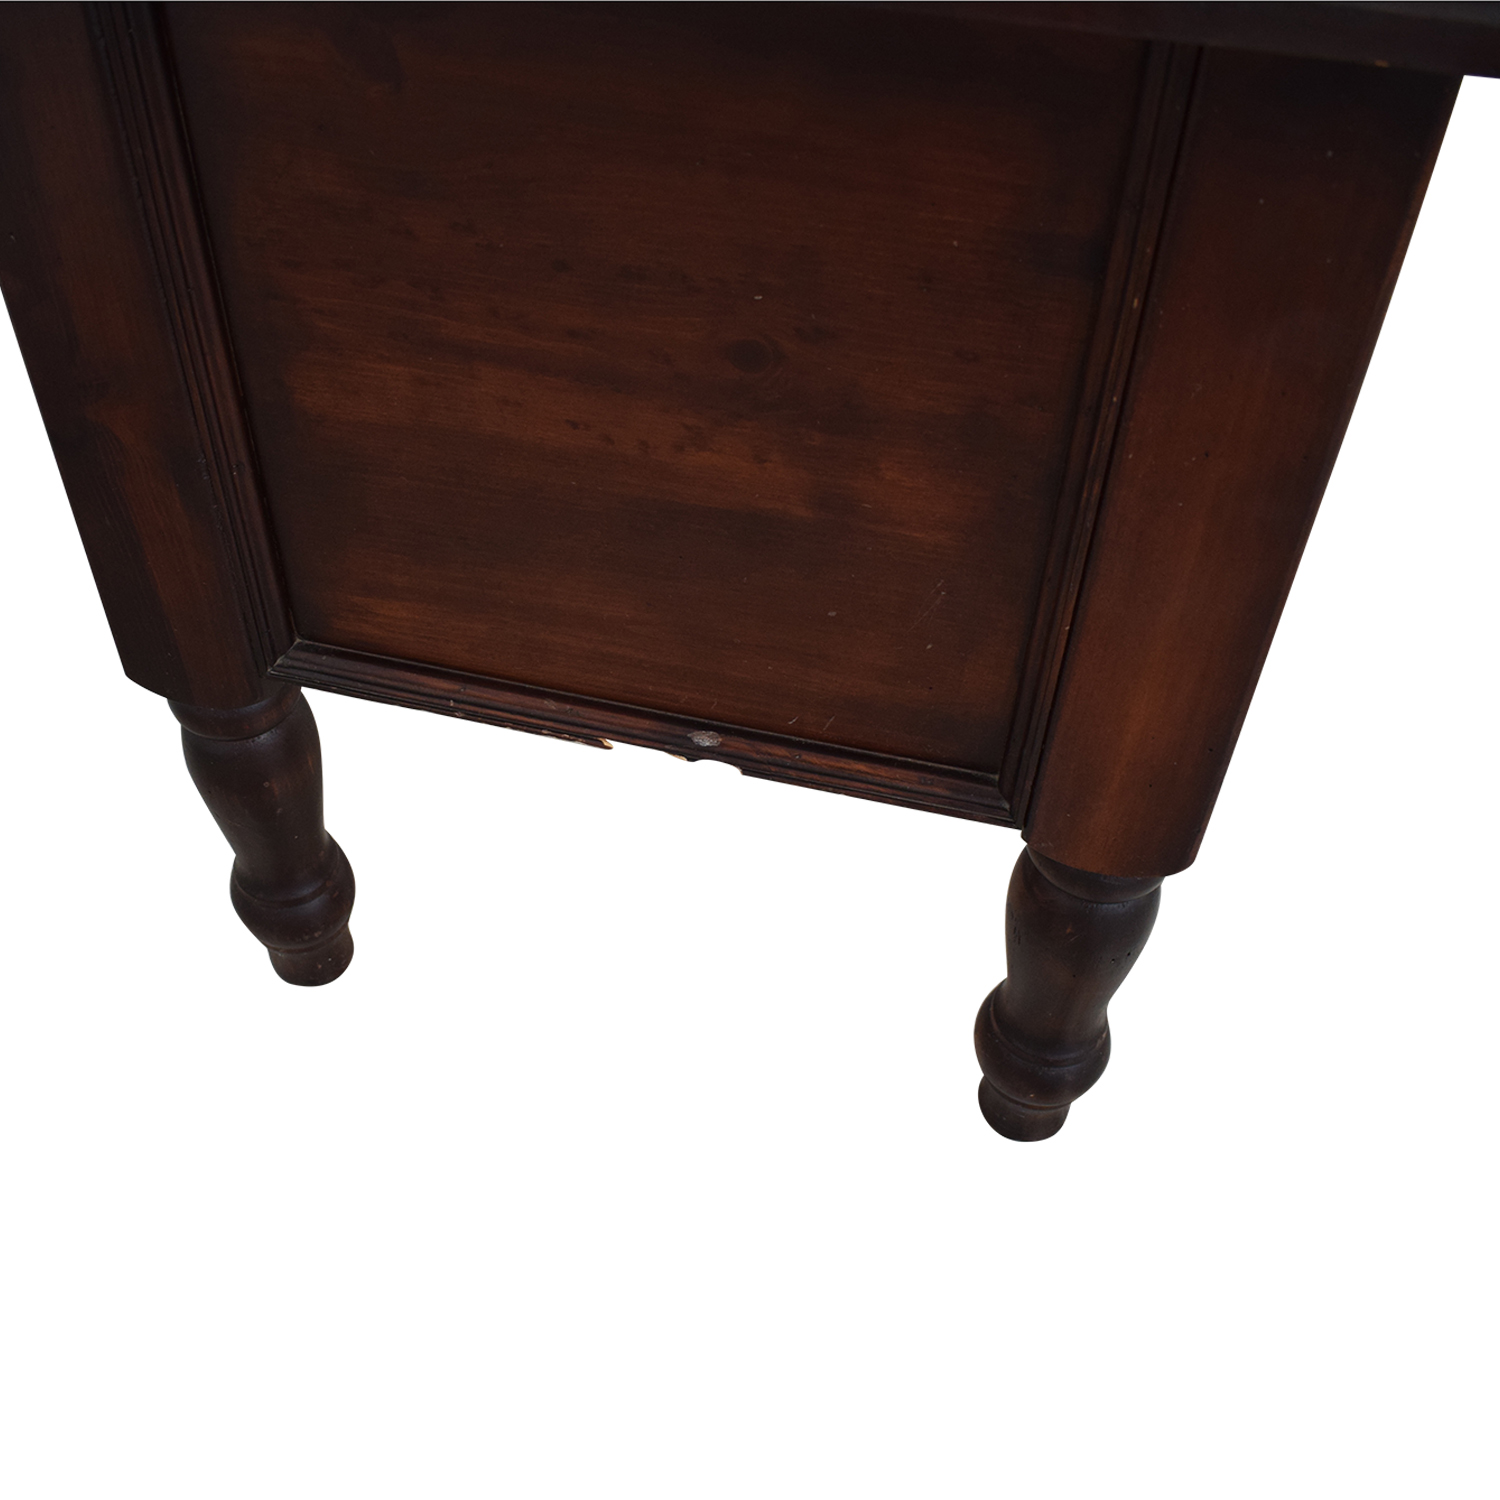 Pottery Barn Desk with Three Drawers Pottery Barn